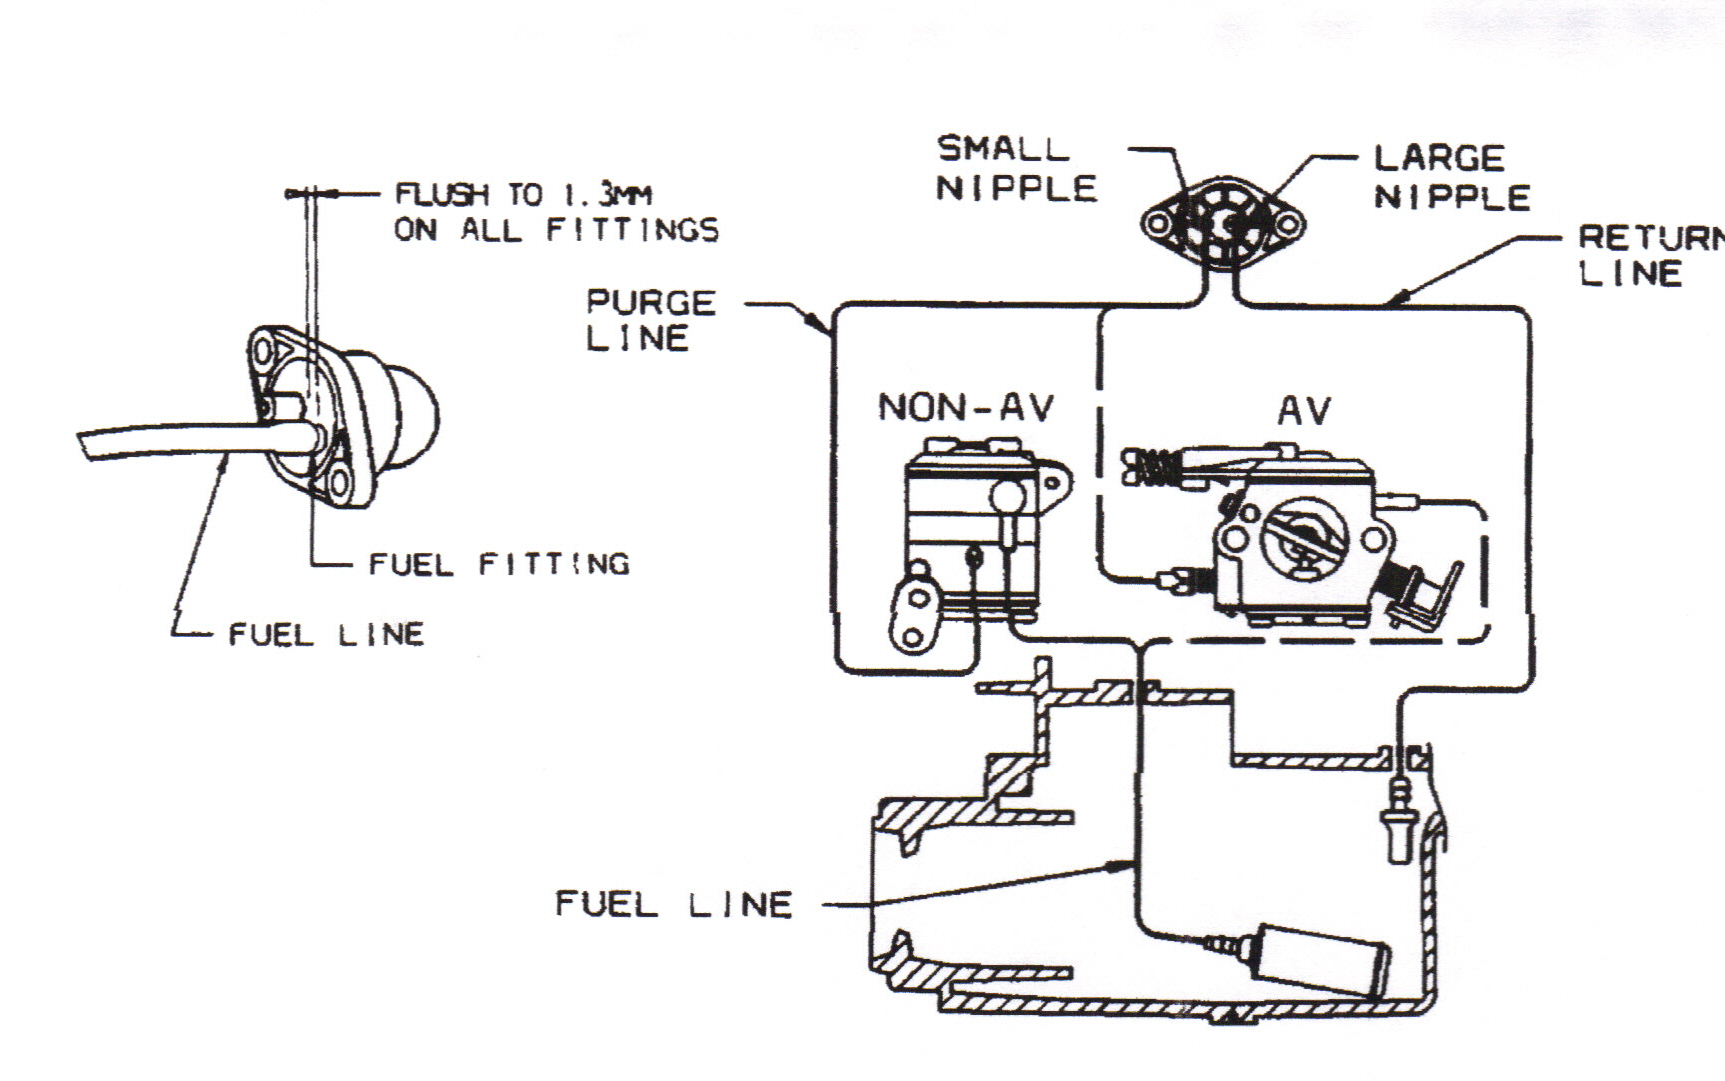 Need instructions to route primer bulb and fuel line on